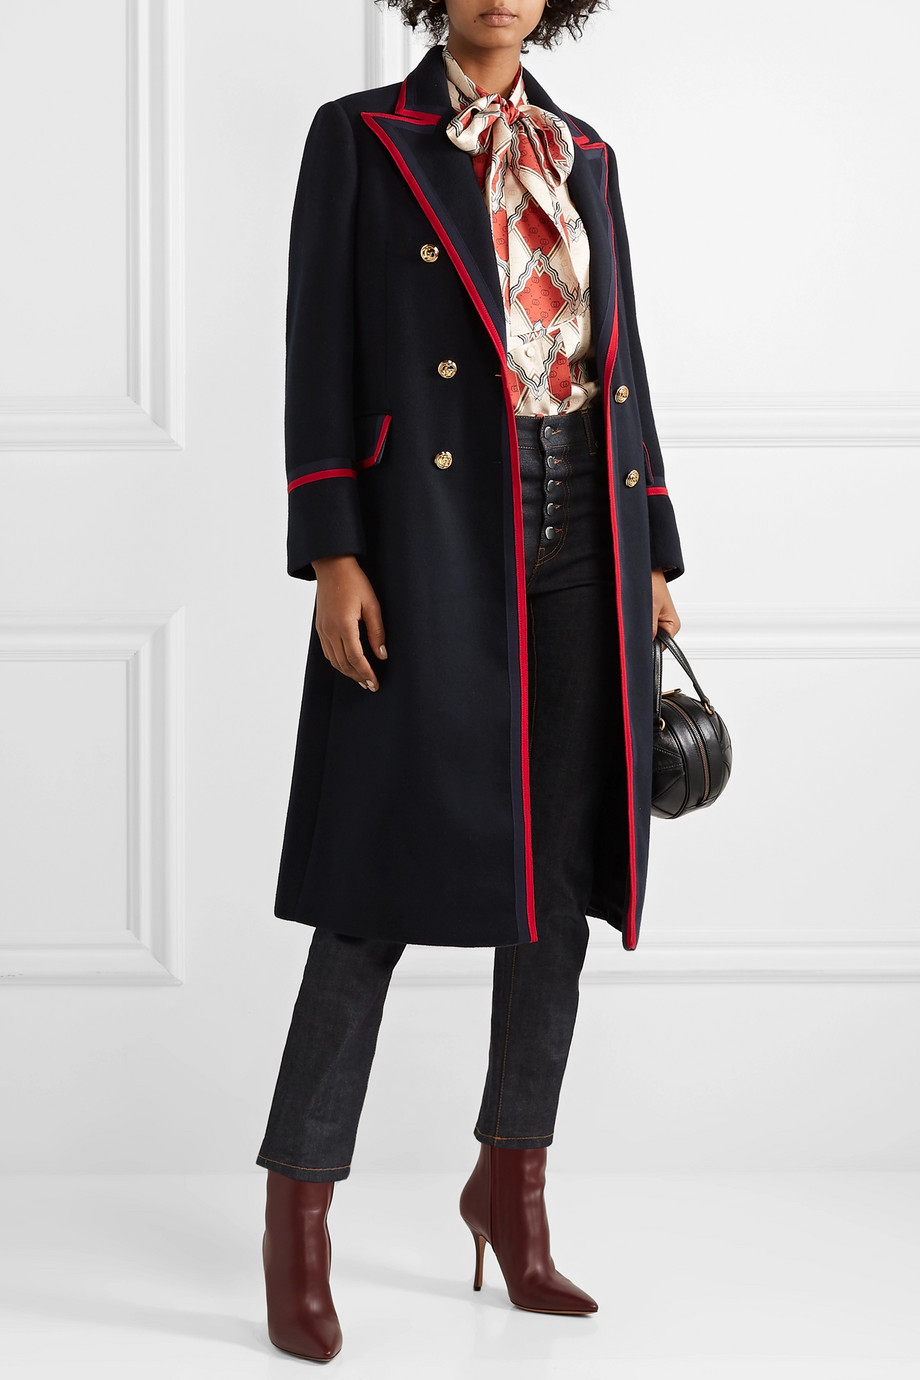 Gucci Grosgrain-trimmed wool-blend coat